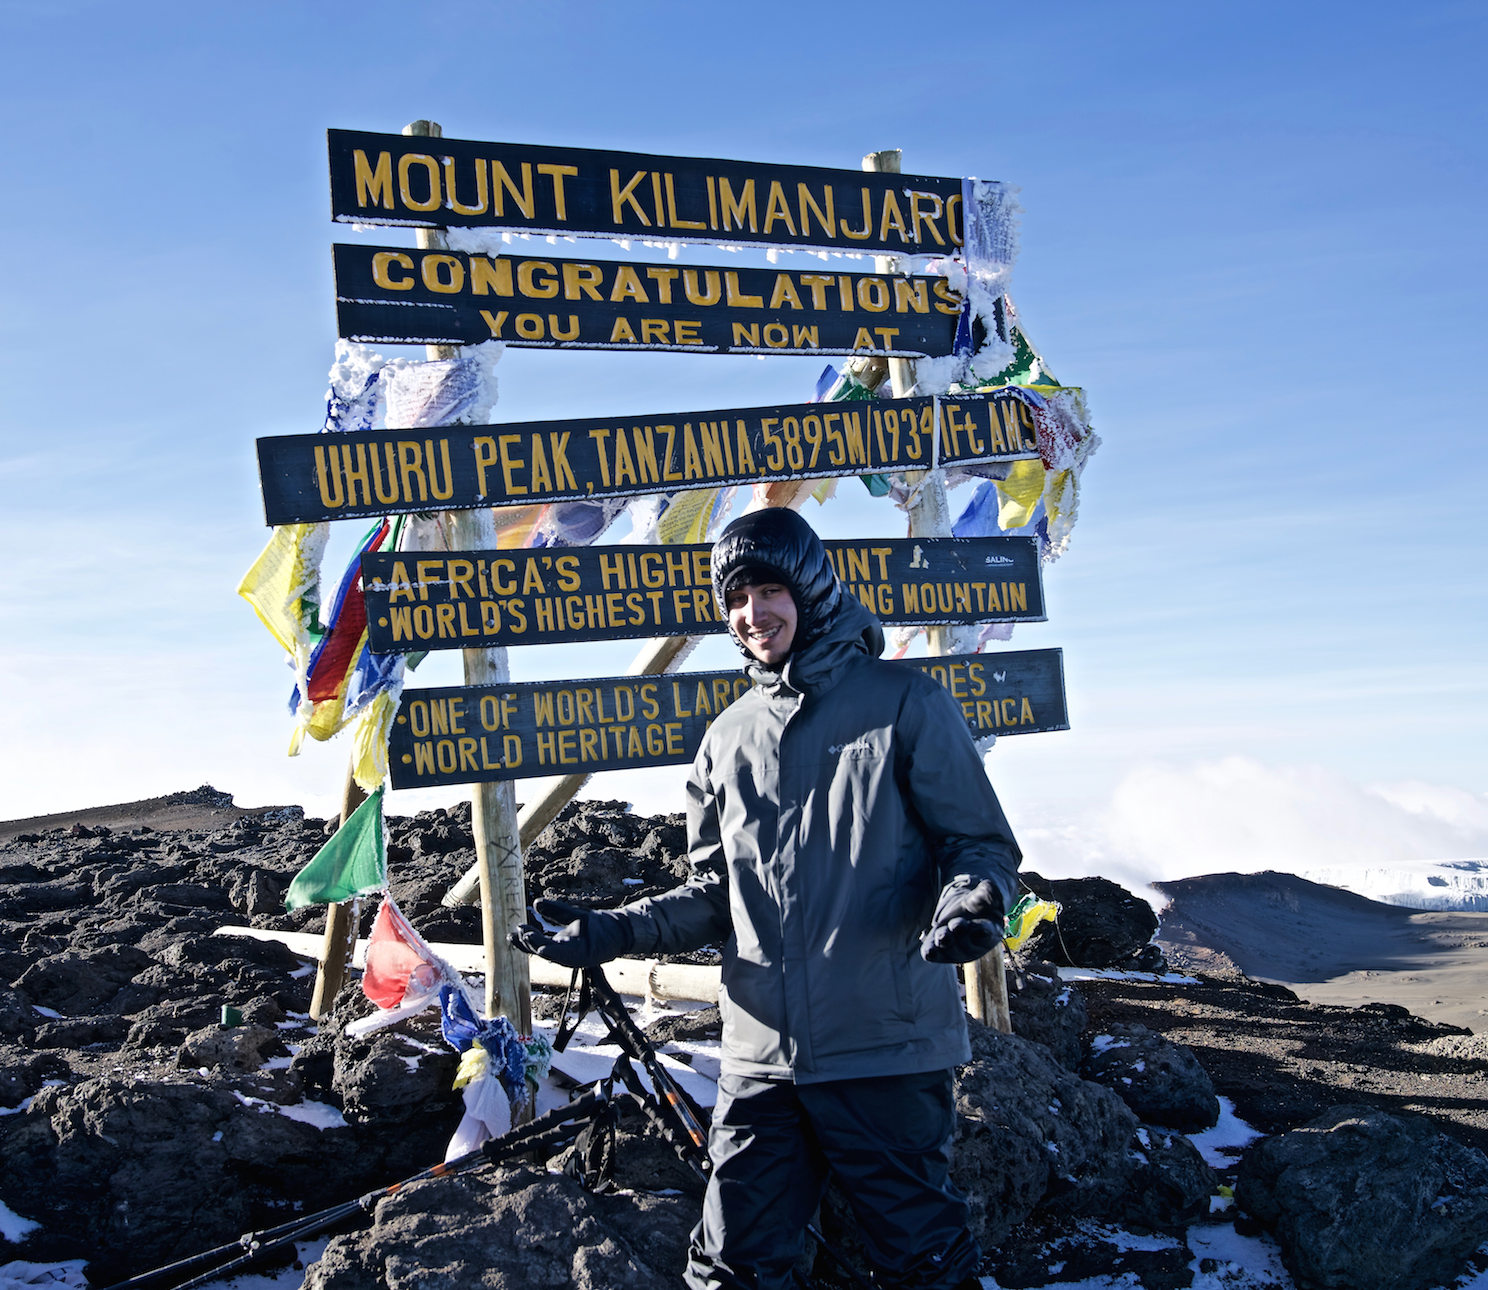 Freshman Daanyal Raja poses for a picture at the top of Mount Kilimanjaro. He made this climb with his family last December. Photo used with permission of Saeed Raja.